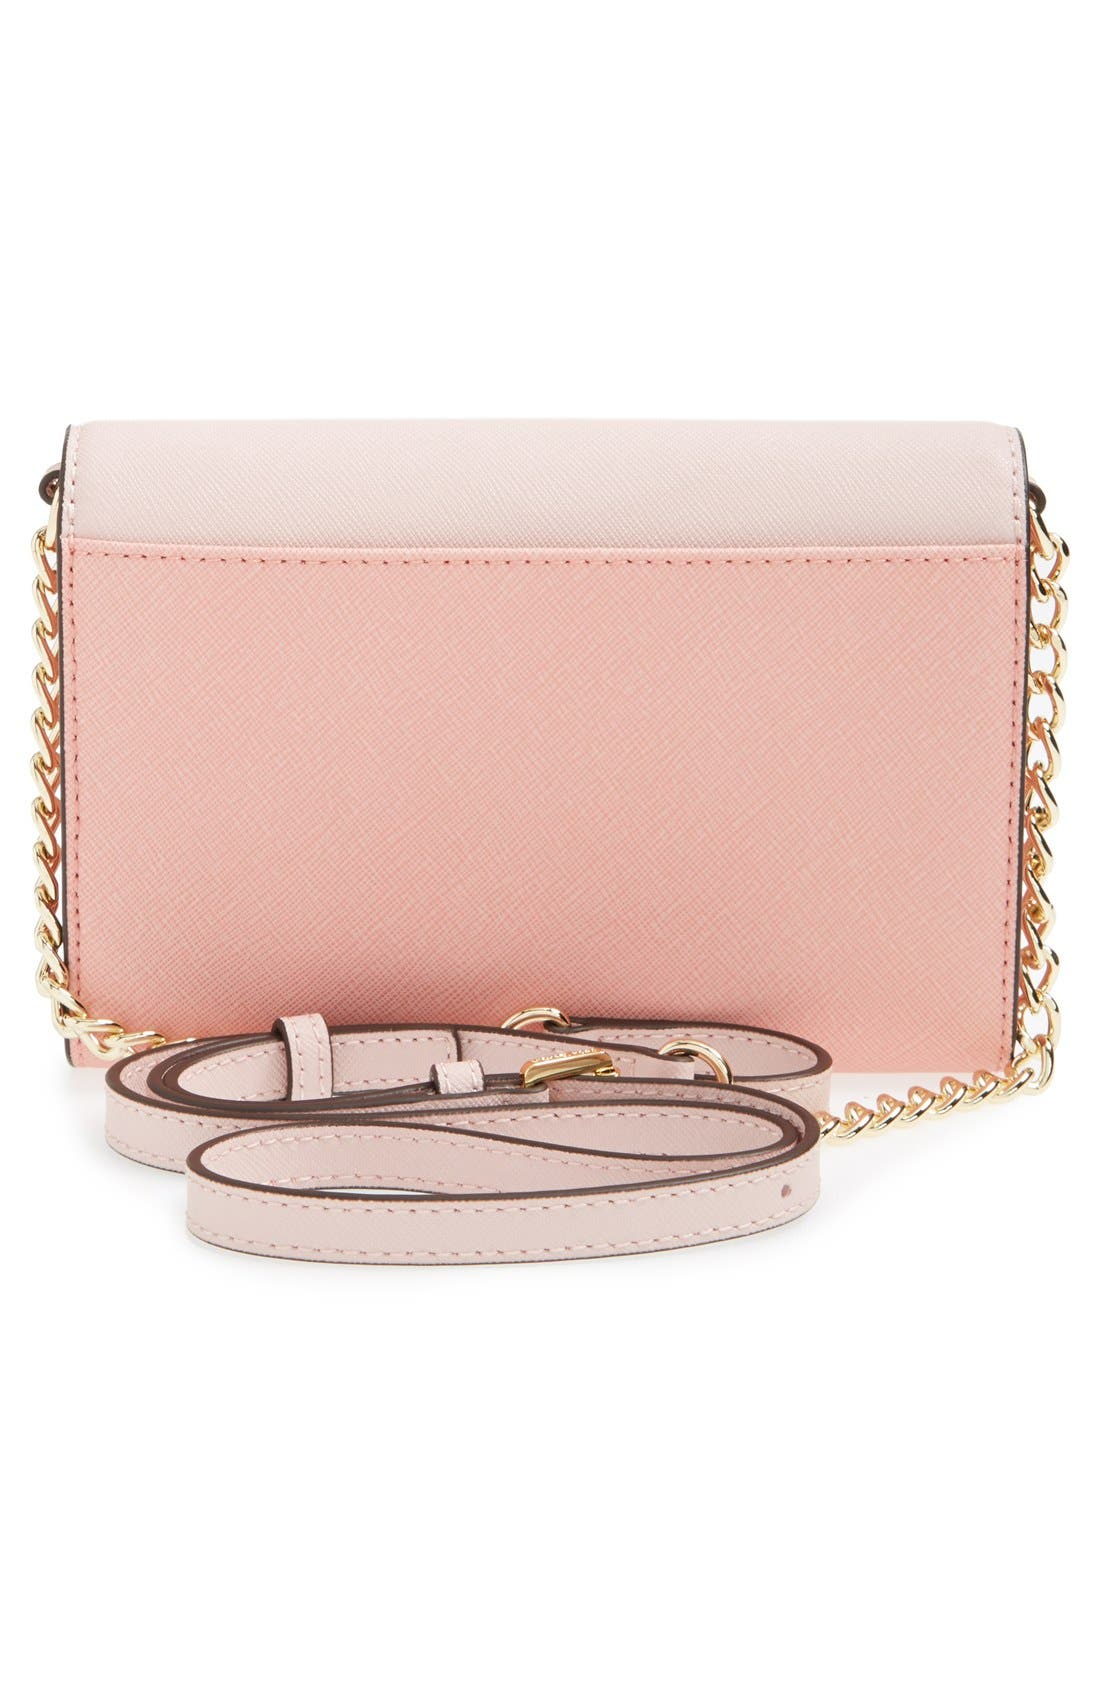 Alternate Image 3  - MICHAEL Michael Kors 'Jet Set Travel' Saffiano Leather Crossbody Bag